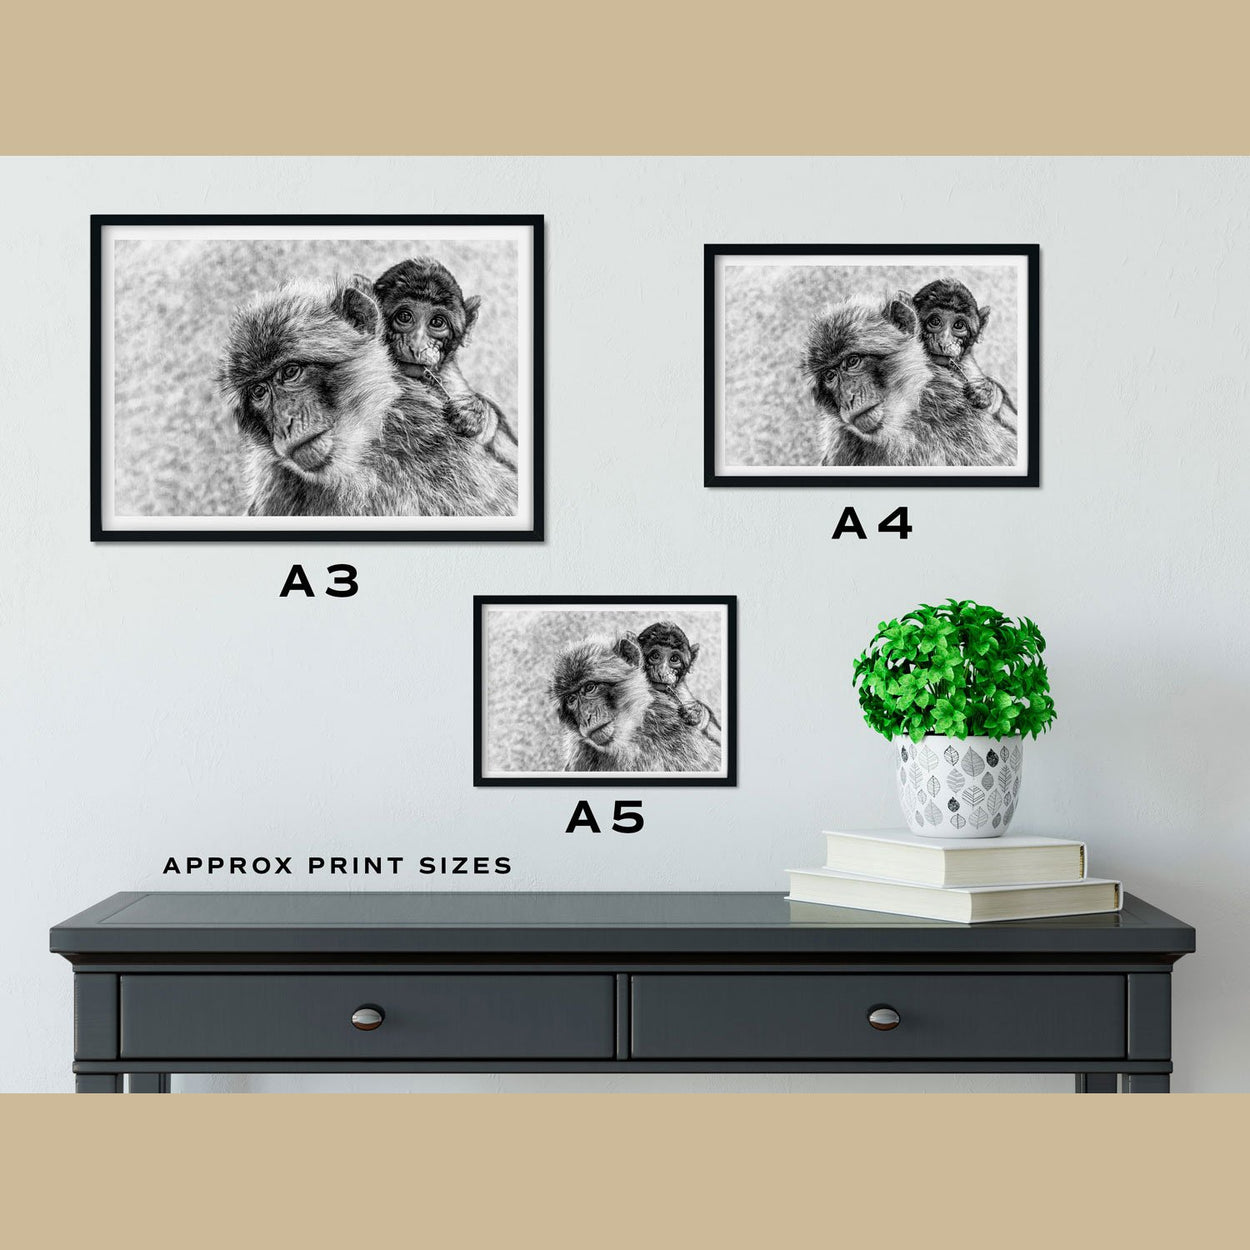 Macaques Prints Size Comparison - The Thriving Wild